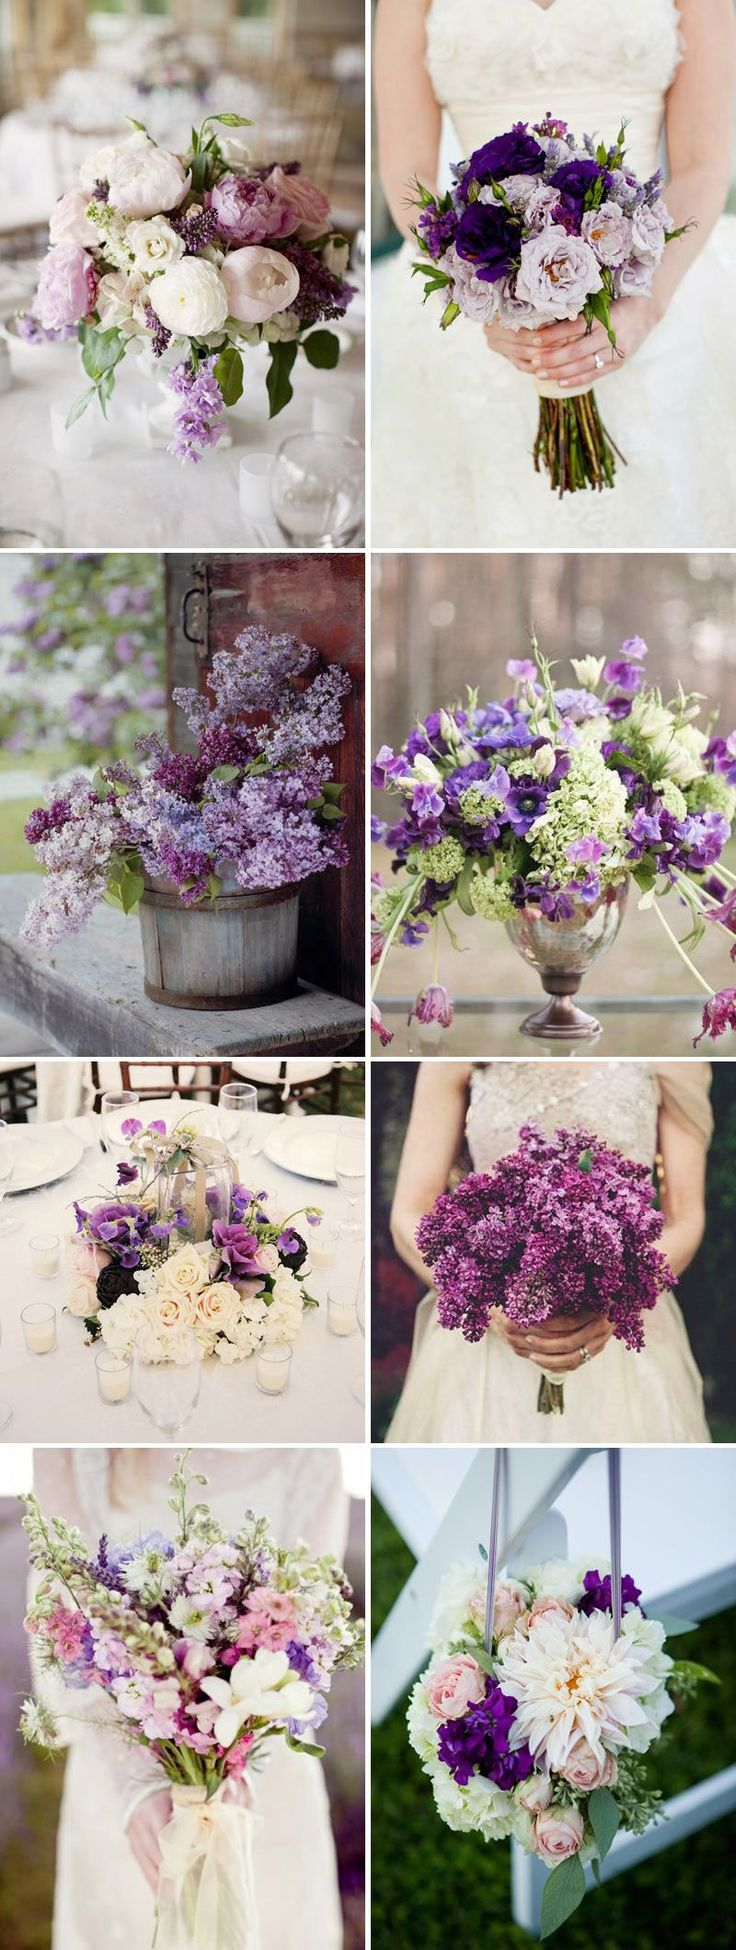 Purple Wedding Ideas - Plum Posies Floral Wedding http://roxyheartvintage.com